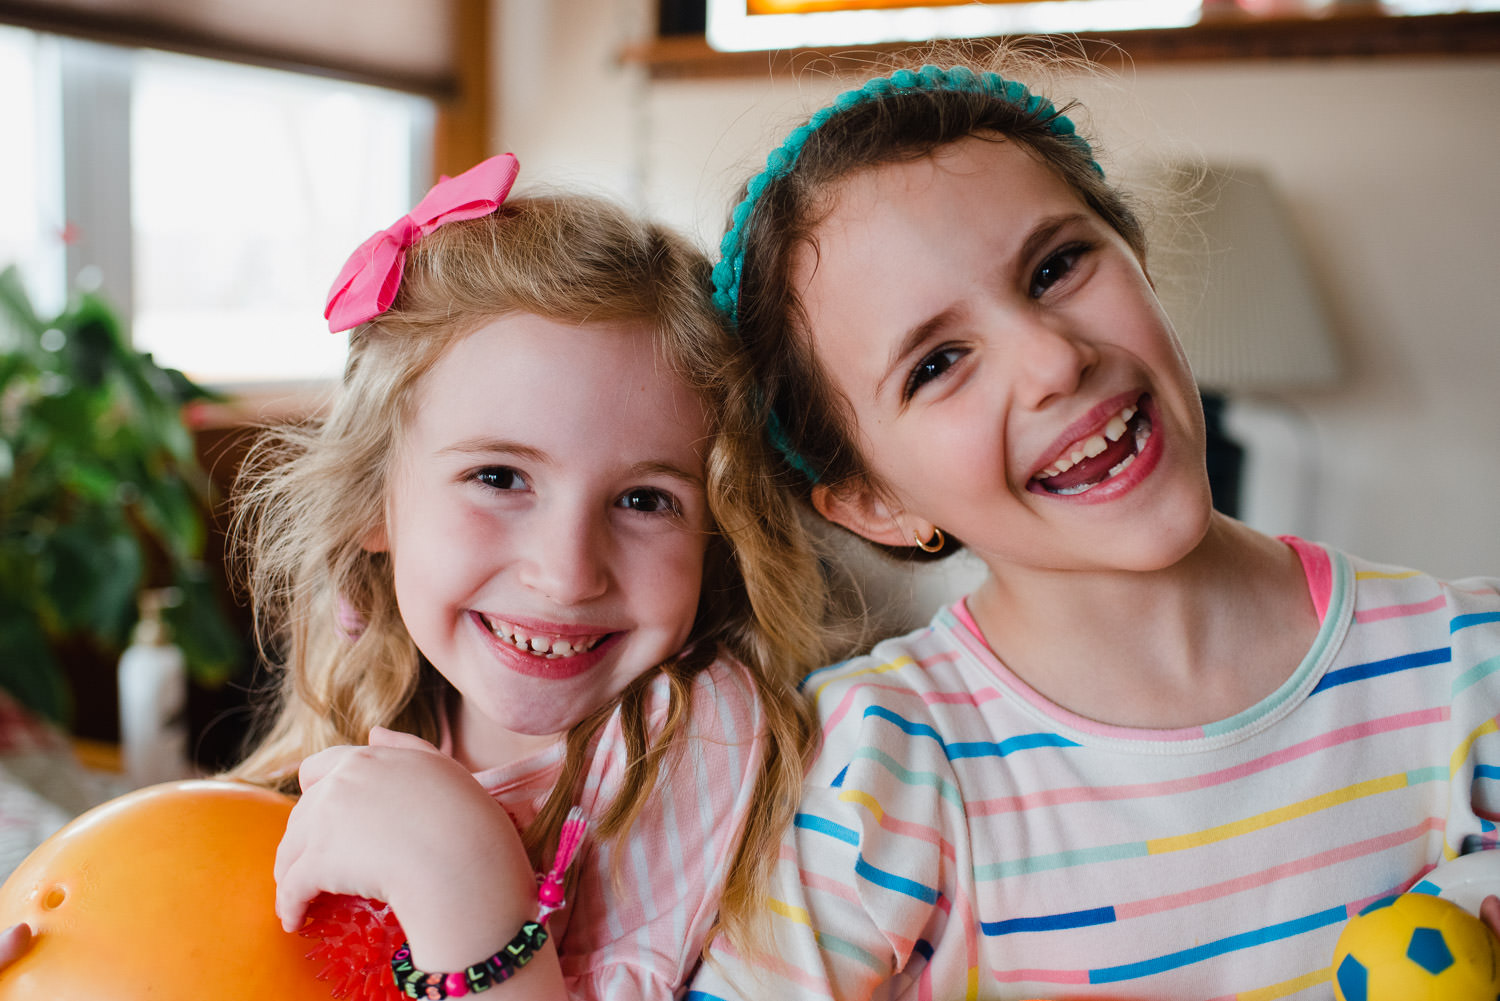 Two little girls smile at the camera.